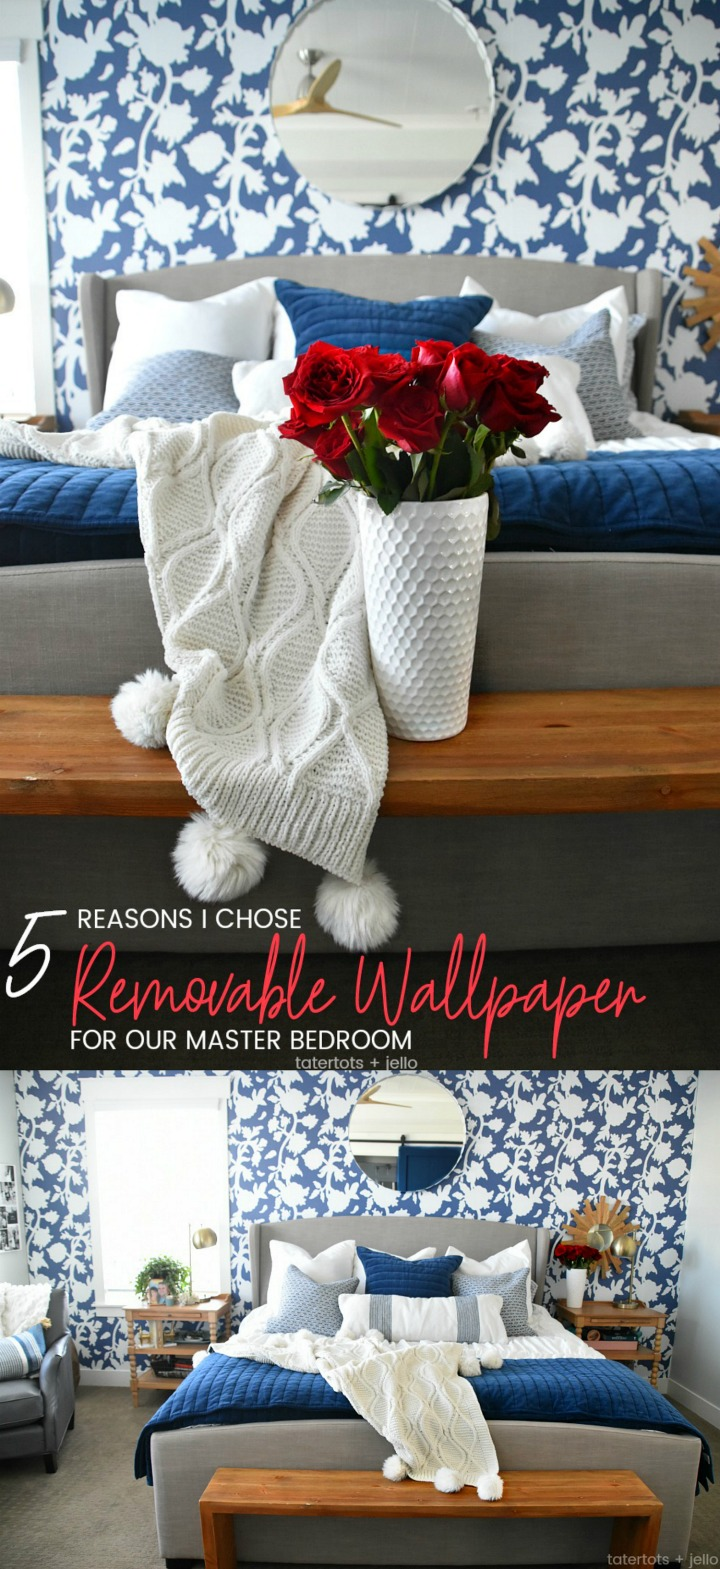 Five Reasons I chose Removable Wallpaper for our Master Bedroom. I researched removable wallpaper for months and I'm sharing all the information with you!